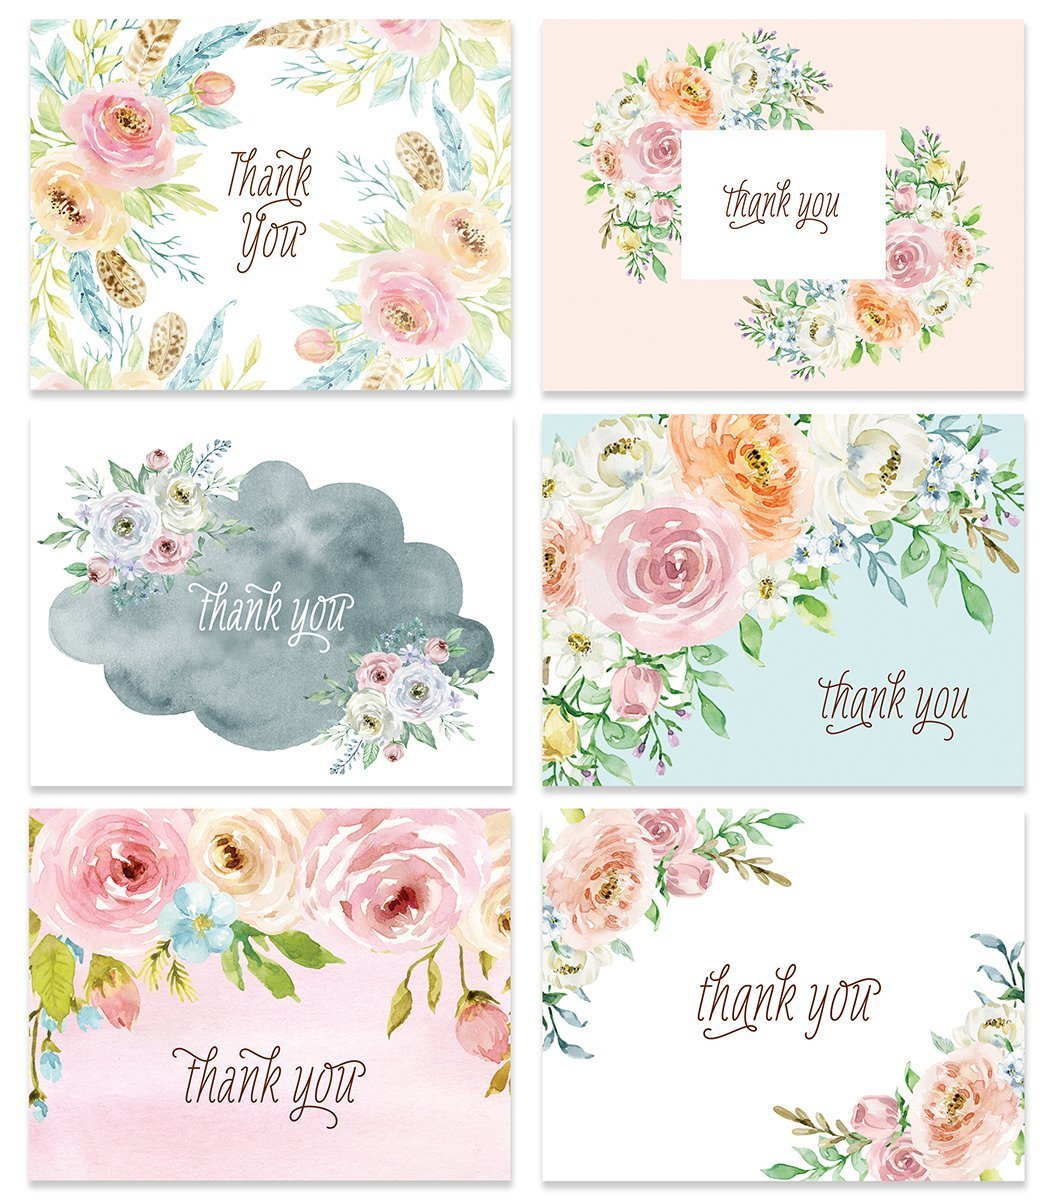 24 Thank You Greeting Cards Assorted Pastel Floral 6 Designs Any Occasion Wedding Baby Bridal Shower Anniversary Folded Notecards & Envelopes Blank Inside Personal Stationery Excellent Value VTA0006B